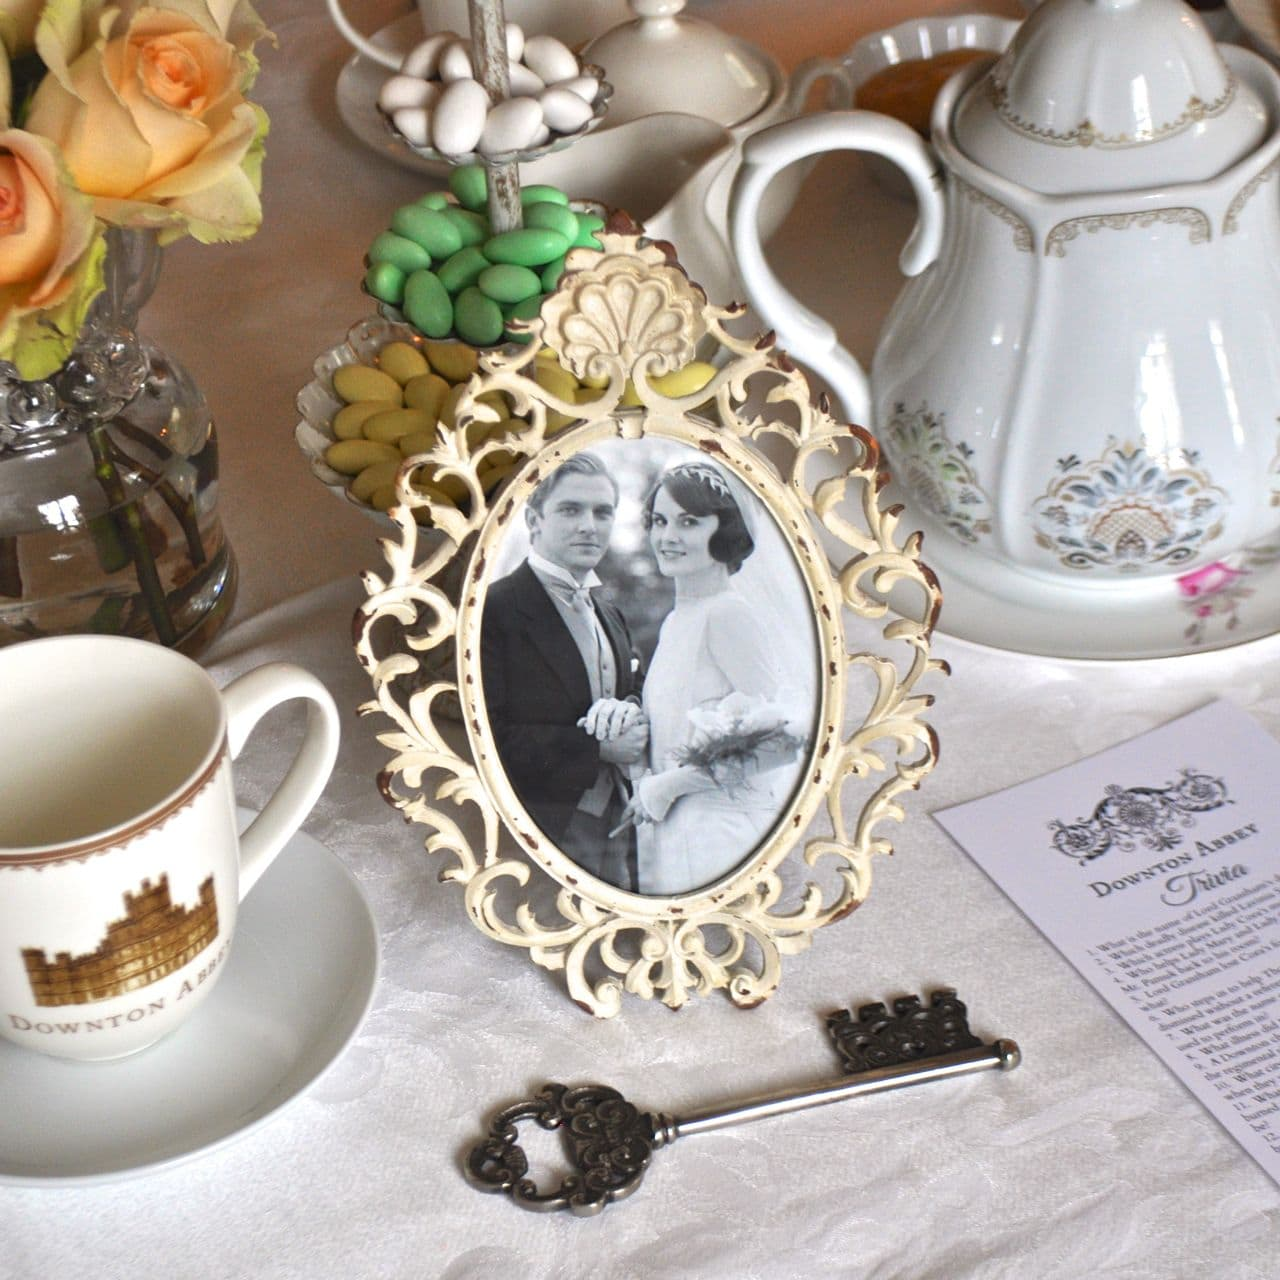 Sofia the first slumber party ideas make life lovely downton abbey tea party monicamarmolfo Image collections